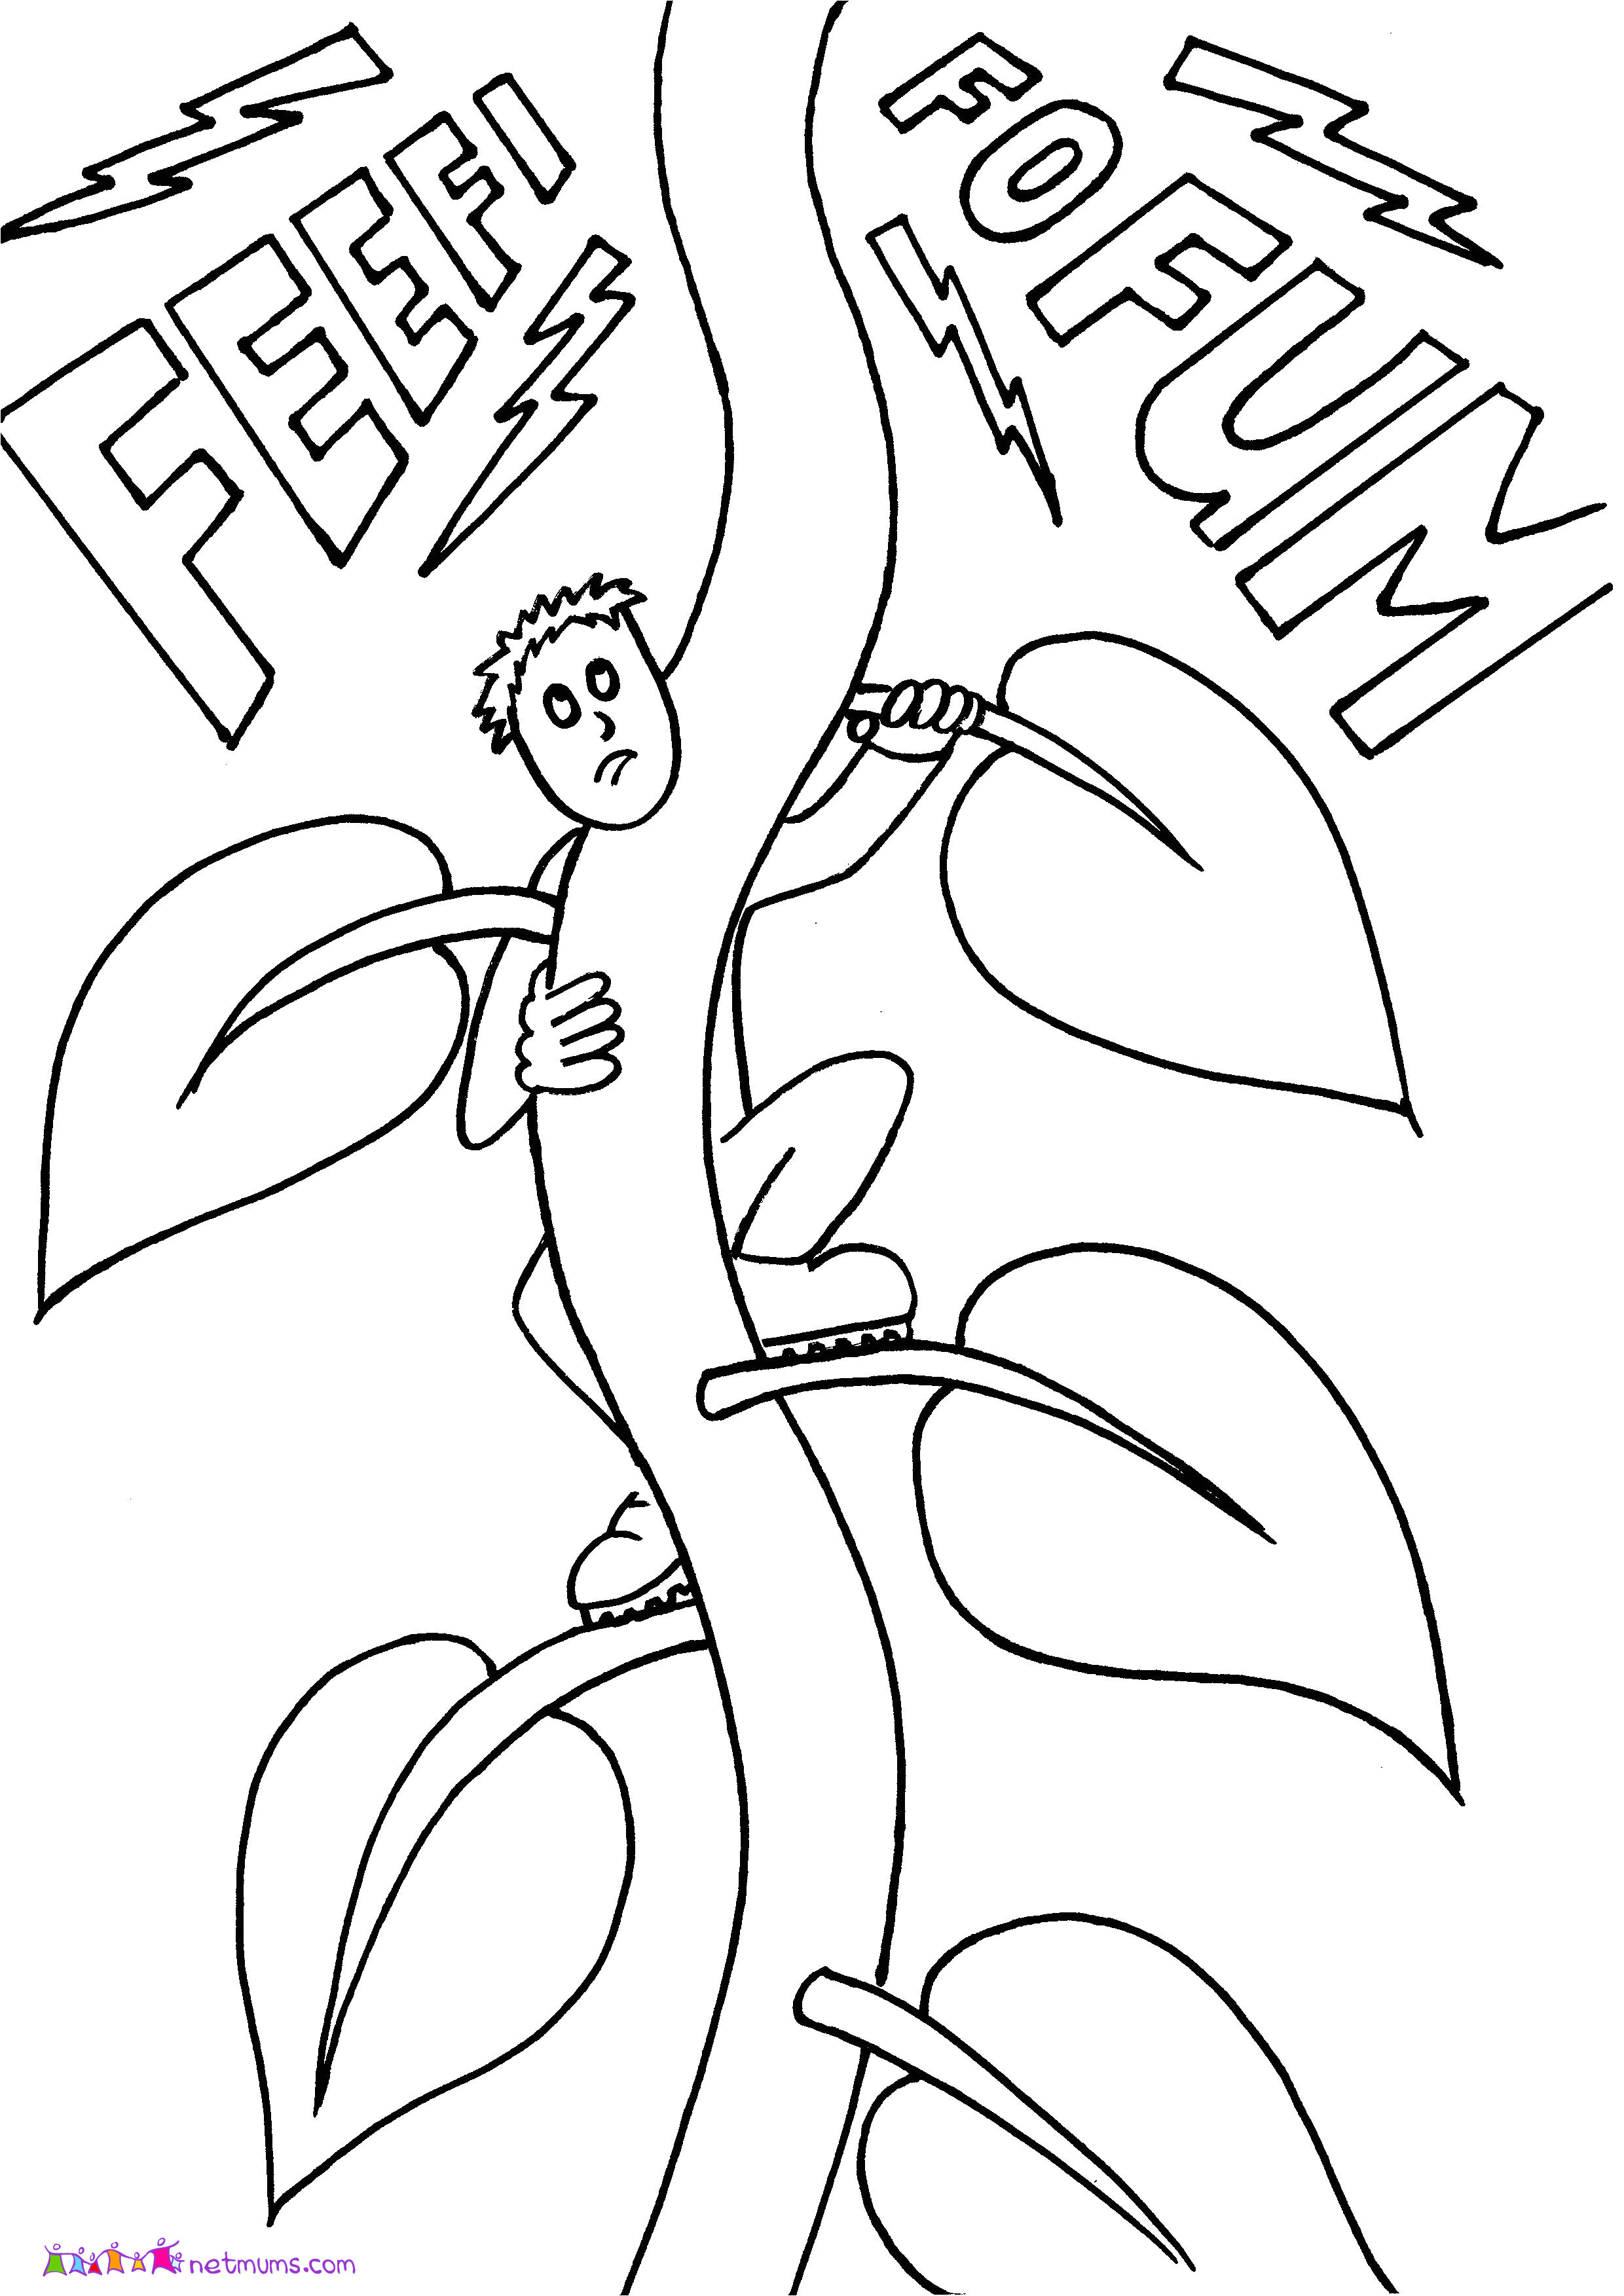 jack and the beanstalk coloring pages